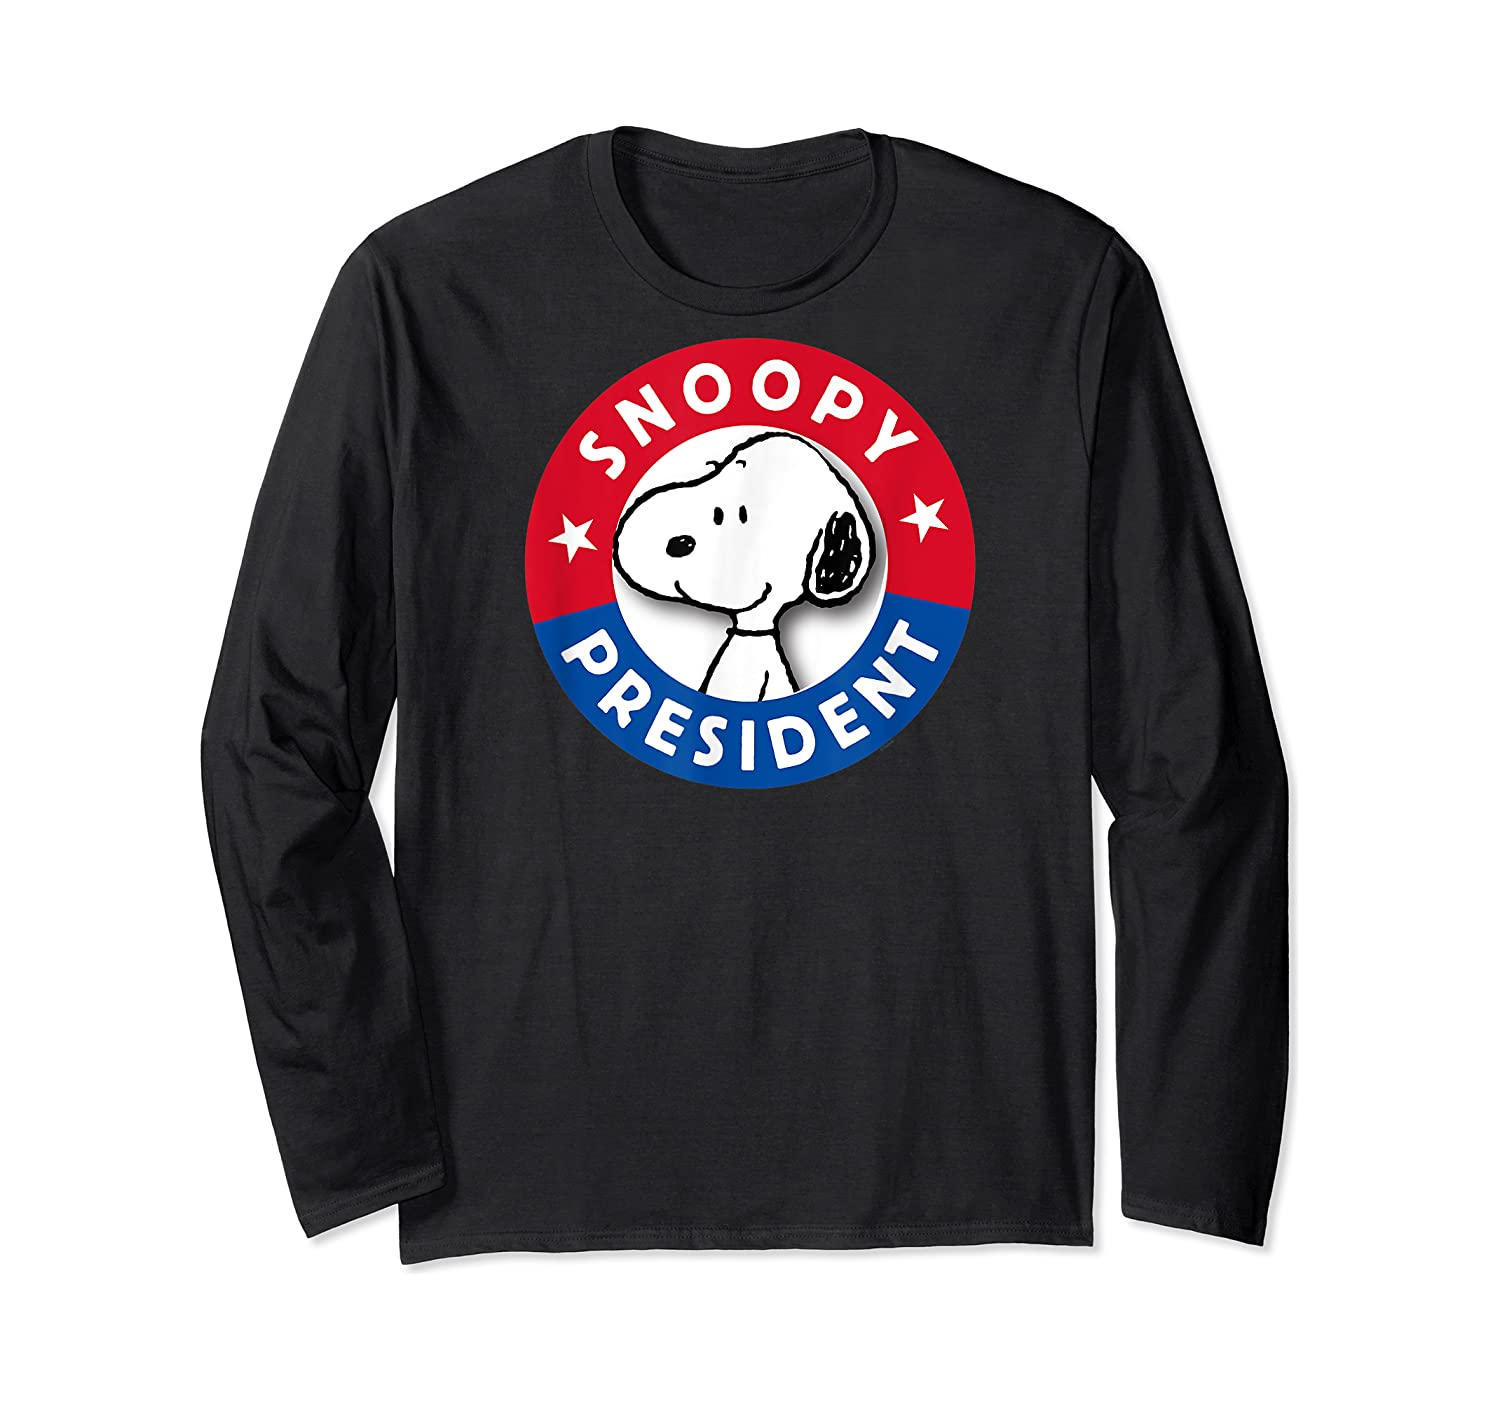 Peanuts Snoopy For President Shirts Long Sleeve T-shirt